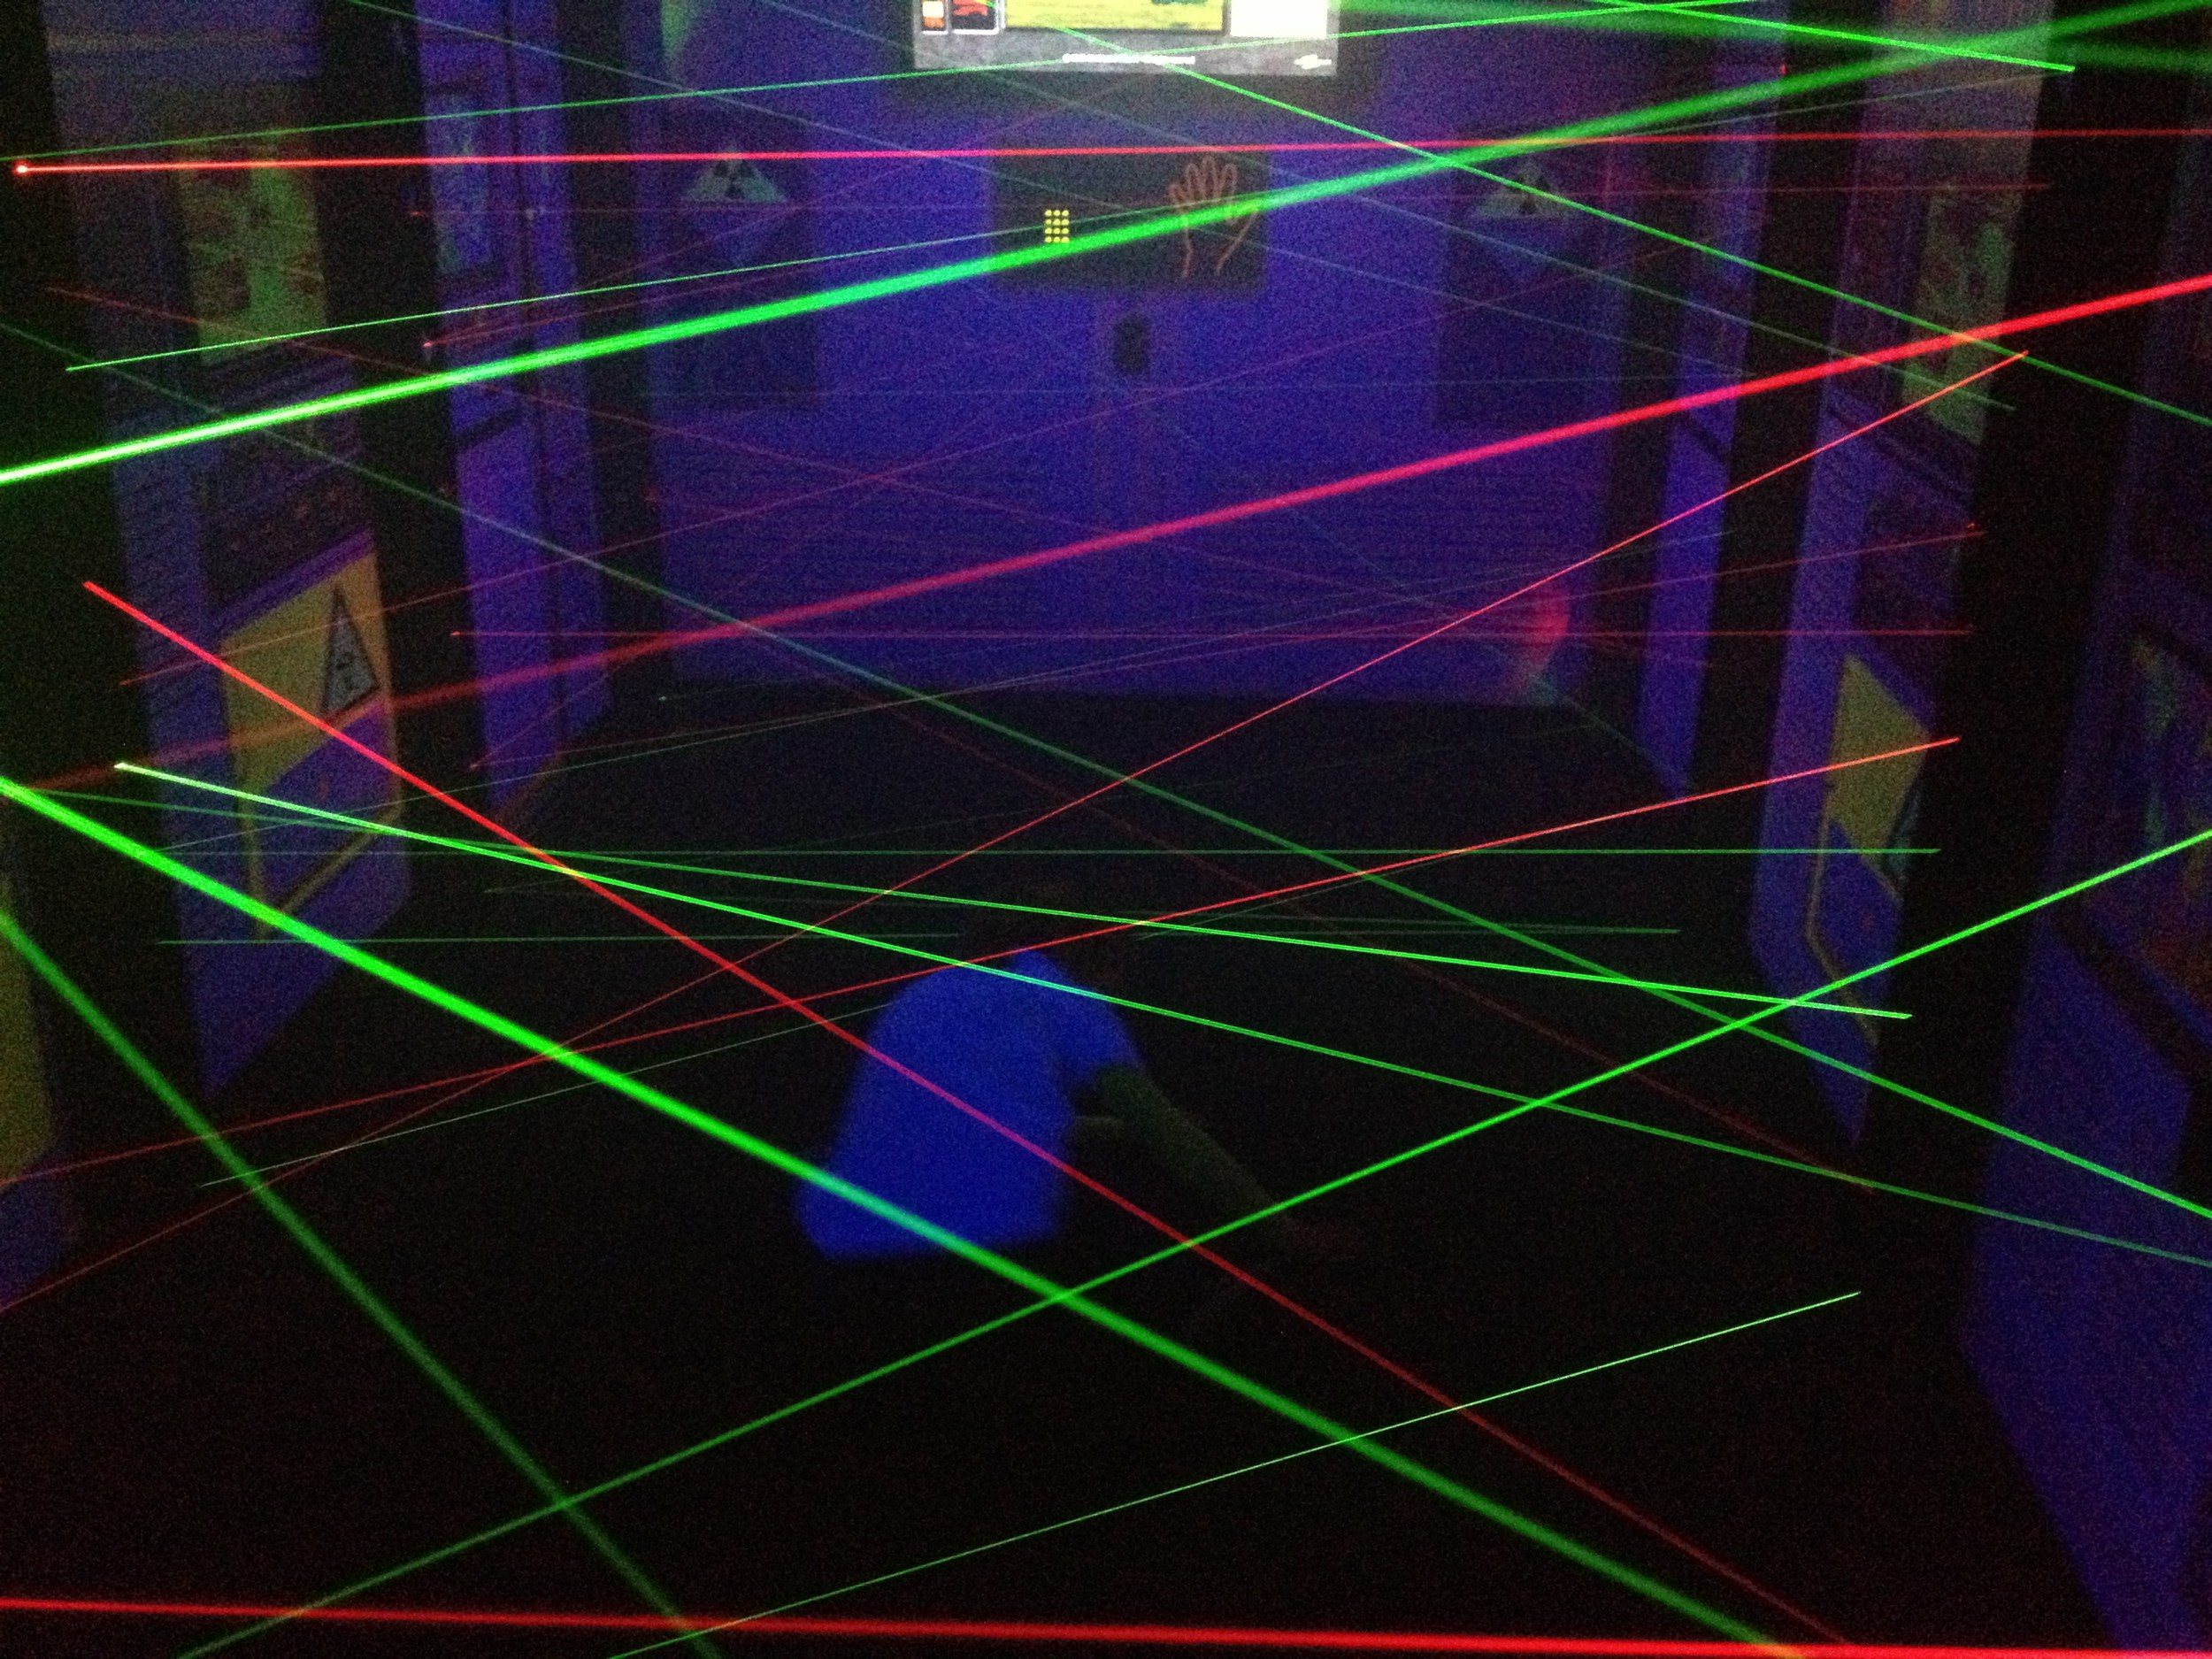 If you've ever wondered if you could maneuver through a room of laser beams to steal a precious diamond or silver briefcase full of plutonium, The Launch Lazer Maze Contest may be your only opportunity—without risk of arrest. I completed half of the course in 1:48 with 12 beams broken. Two words: mission impossible.